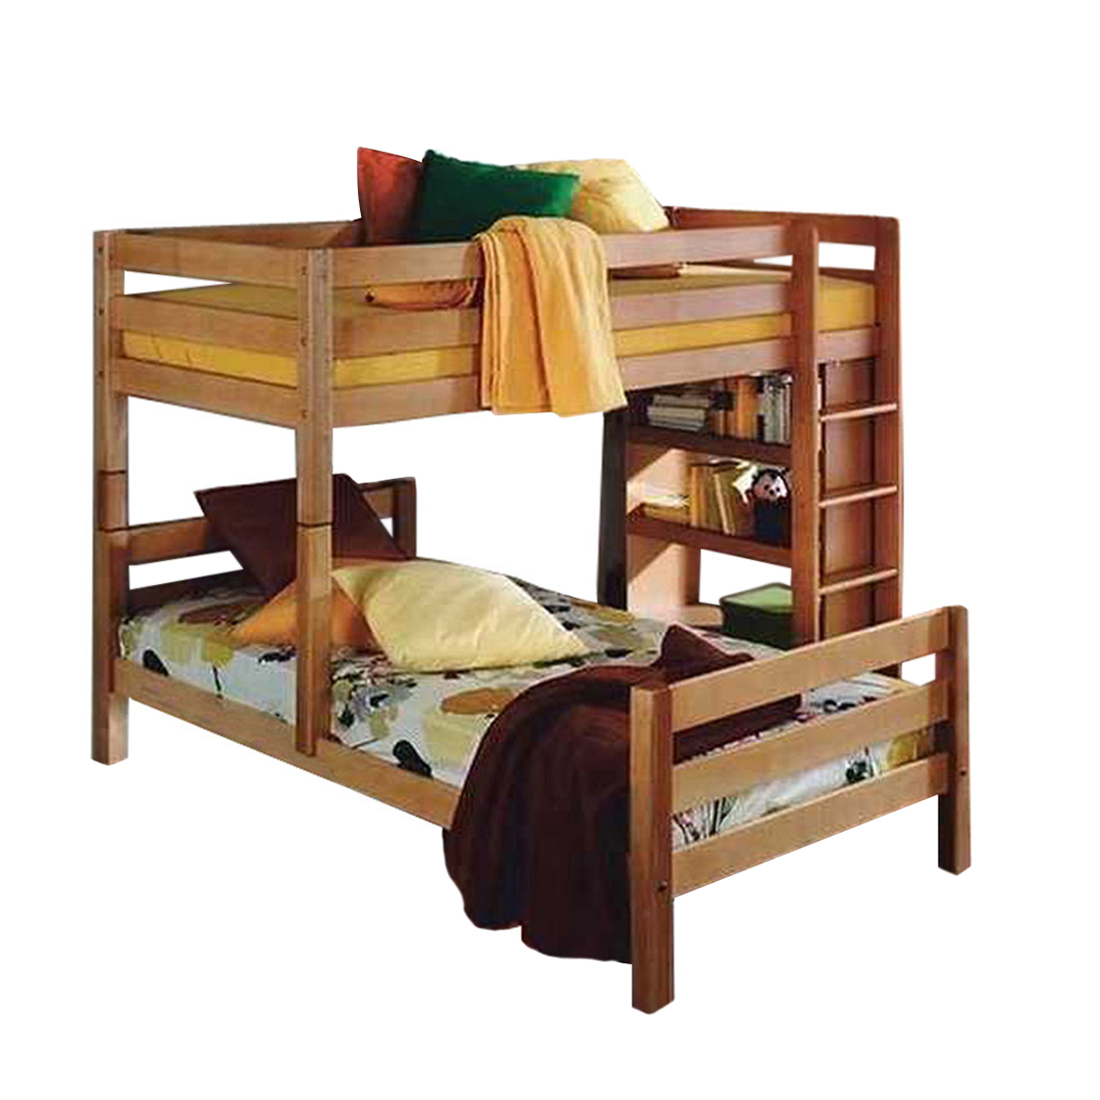 etagenbett buche massivholz je 90x200 hochbett holzbett kinderbett bett neu ebay. Black Bedroom Furniture Sets. Home Design Ideas